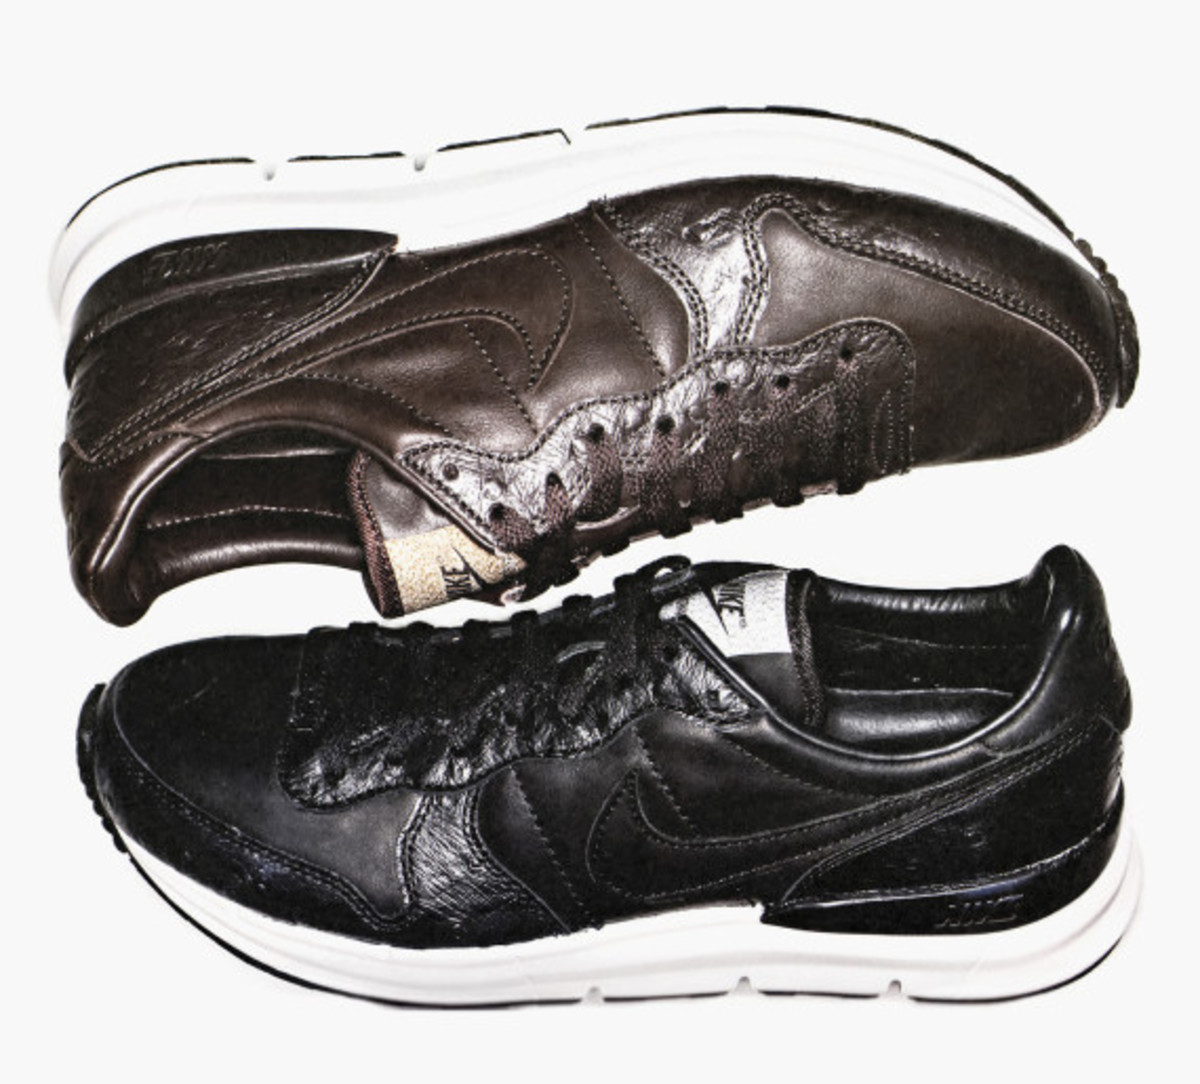 sophnet-nike-15th-anniversary-footwear-collection-03